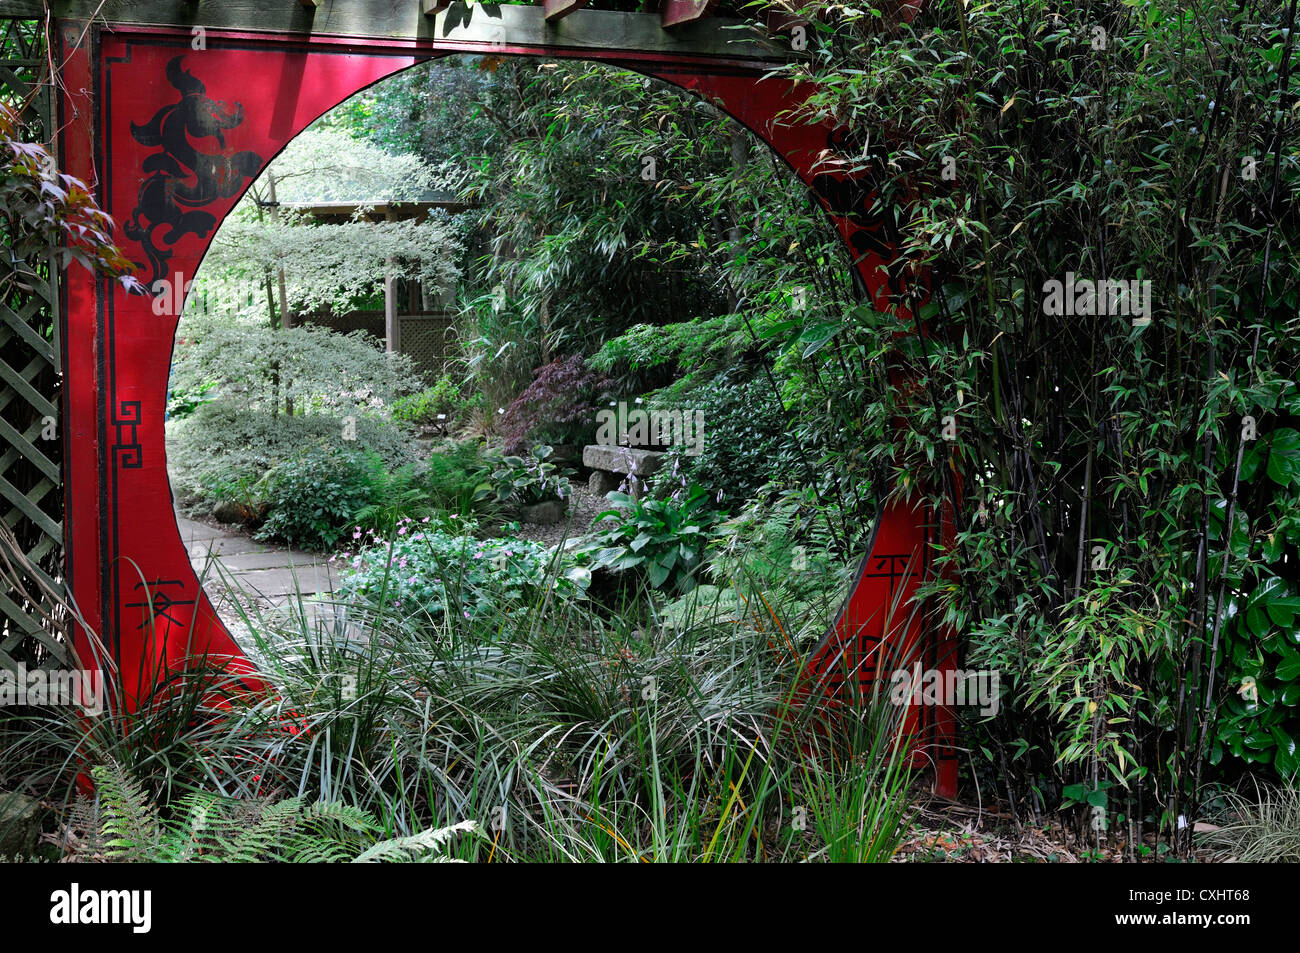 Japanese Garden Mirror Red Frame Framed Reflect Reflection Garden Gardening  Design Illusion Space Create Feng Shui